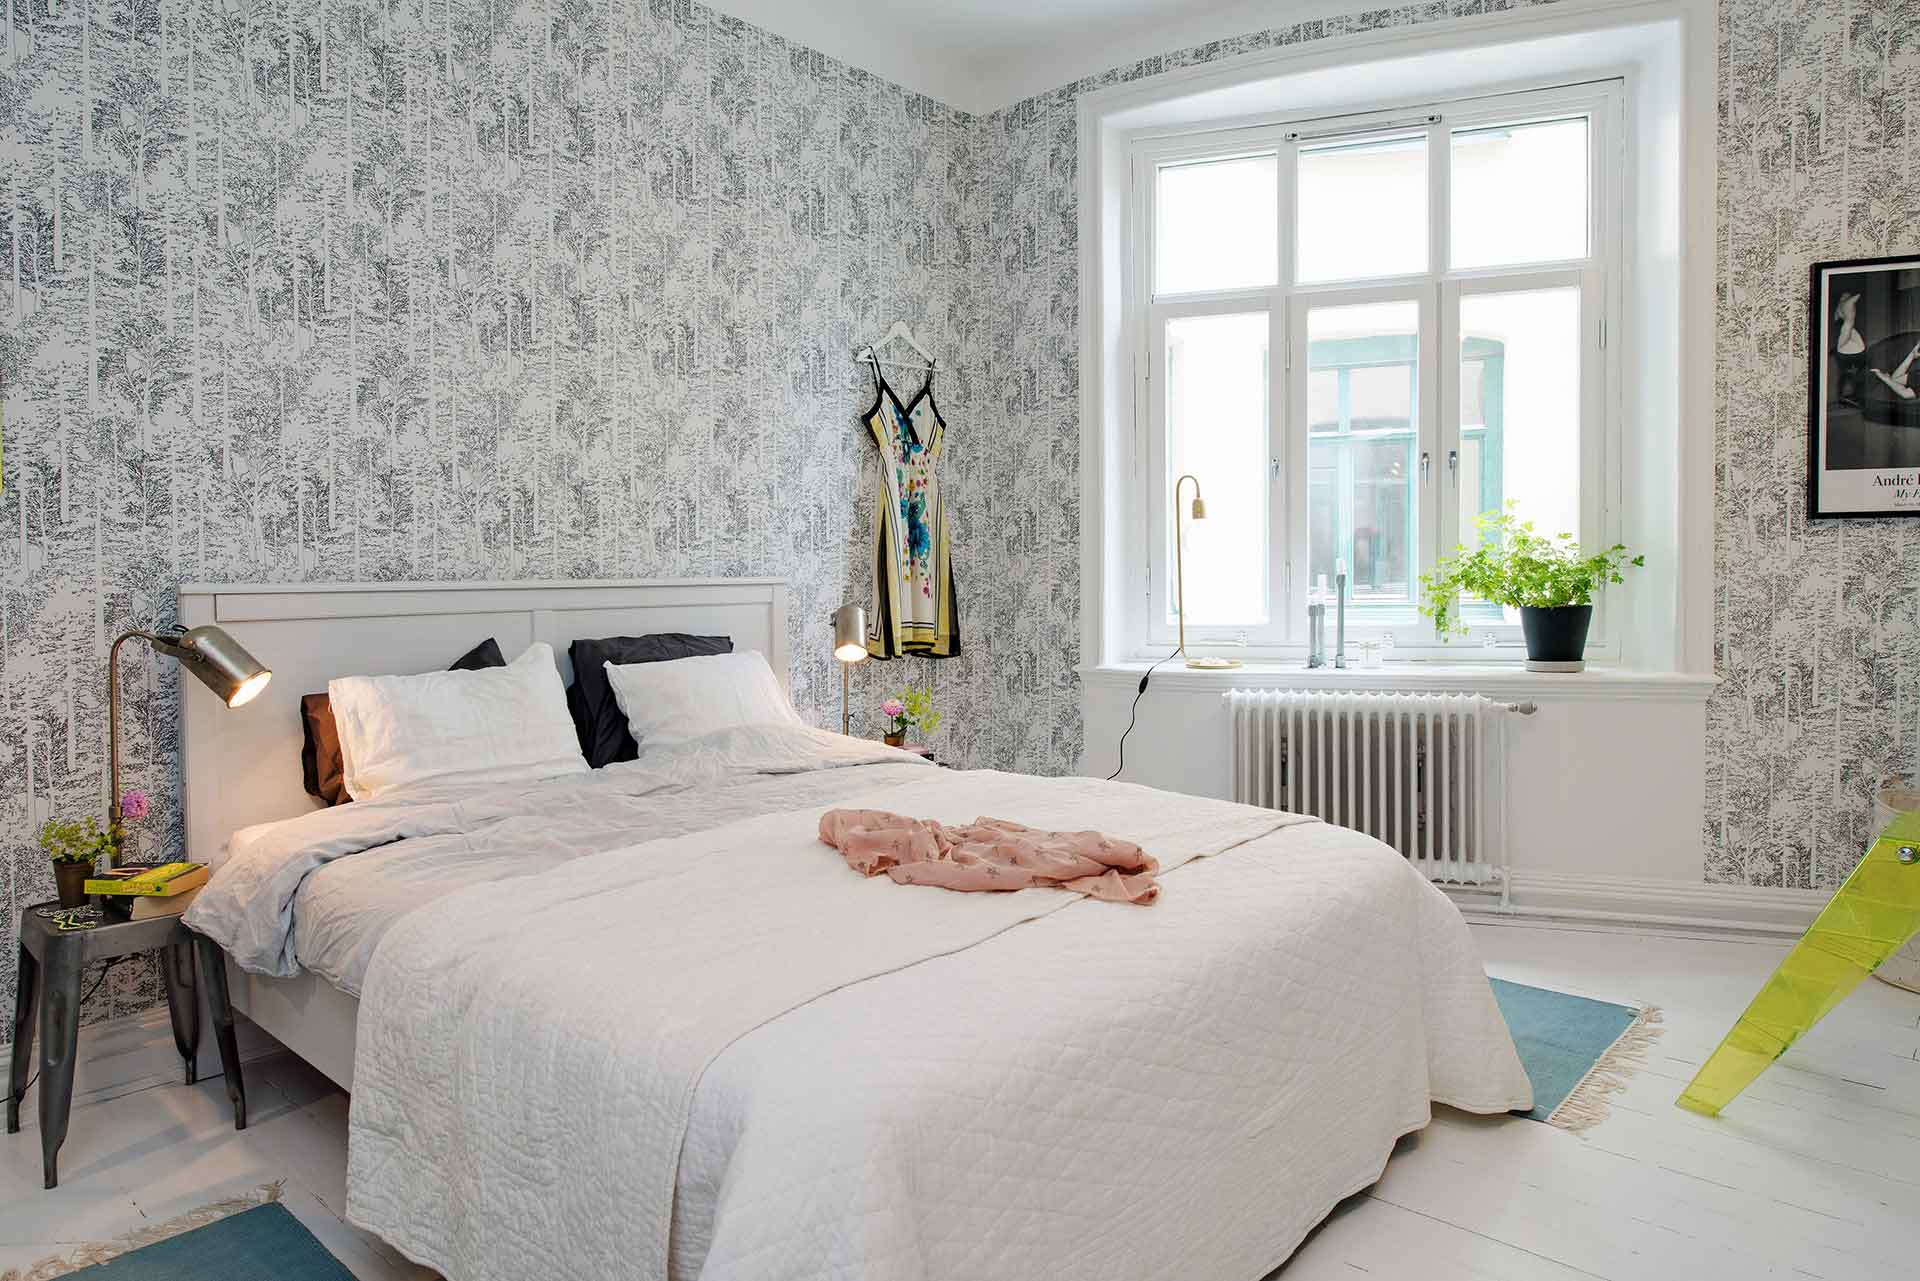 Decors are kept light and muted around the textured walls of a Scandinavian HDB master bedroom